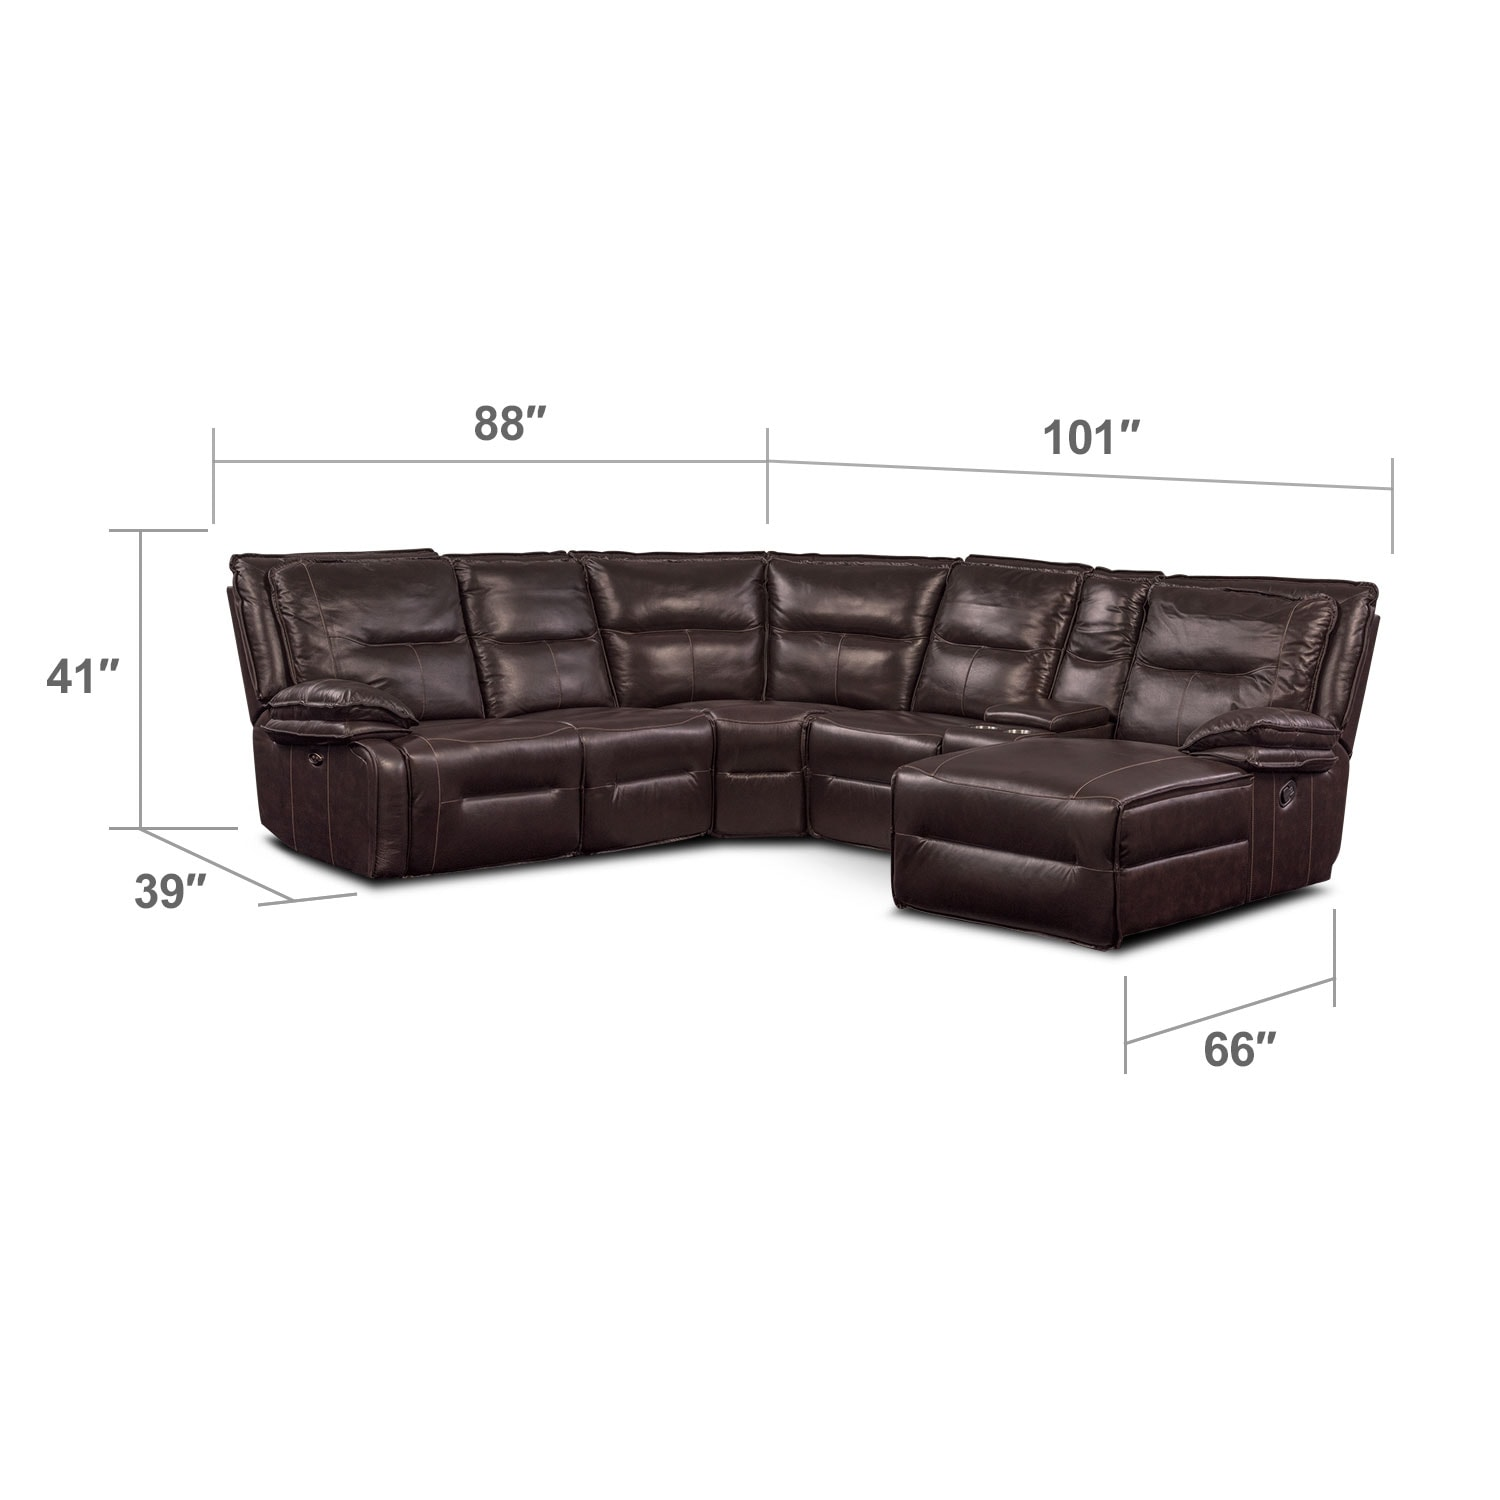 Living Room Furniture - Nikki 6-Piece Power Reclining Sectional with 2 Recliners and Right-Facing Chaise - Brown